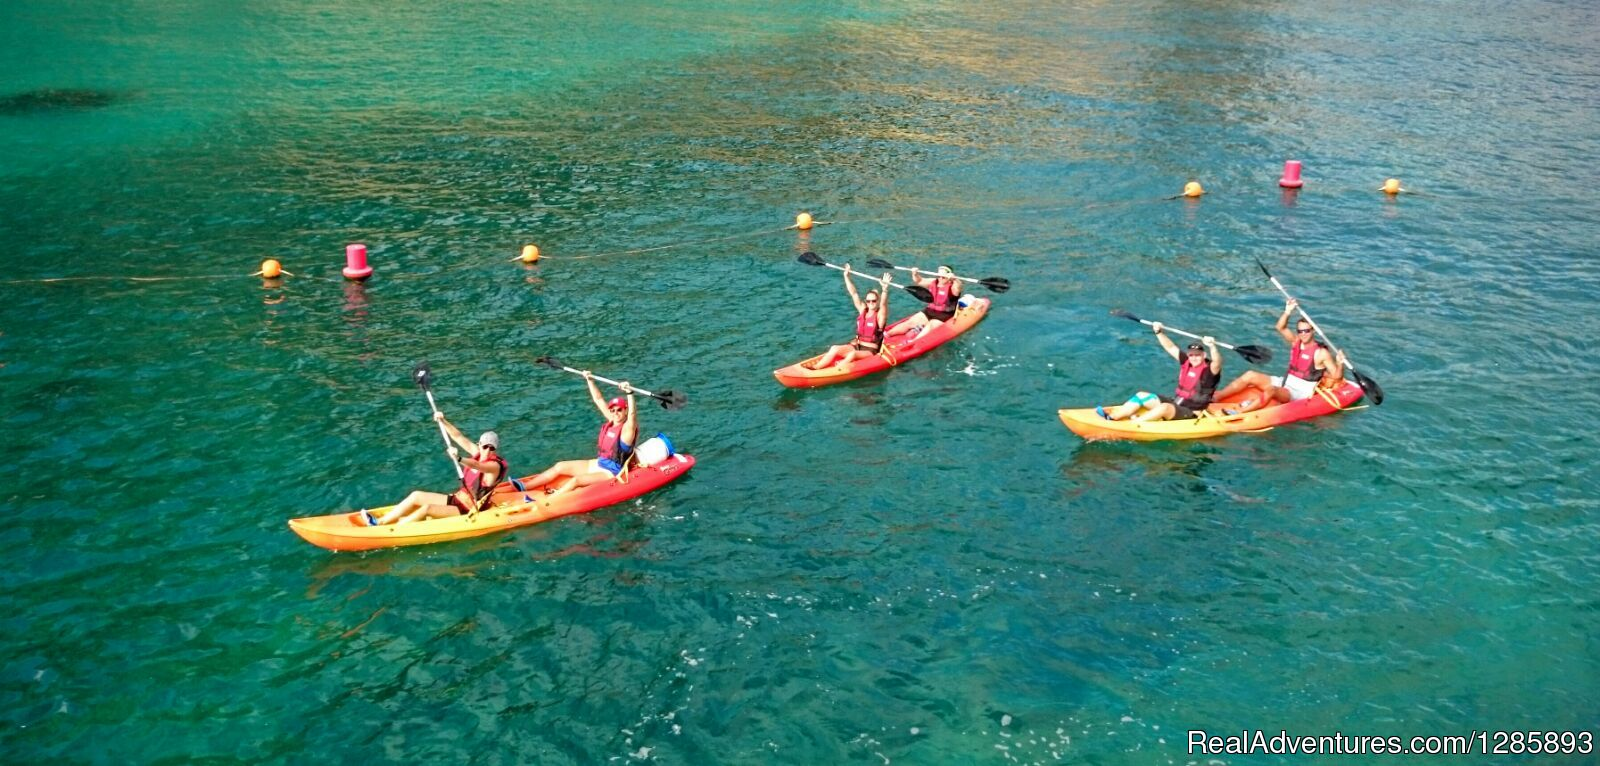 Explore the Costa Blanca coastline by Kayak